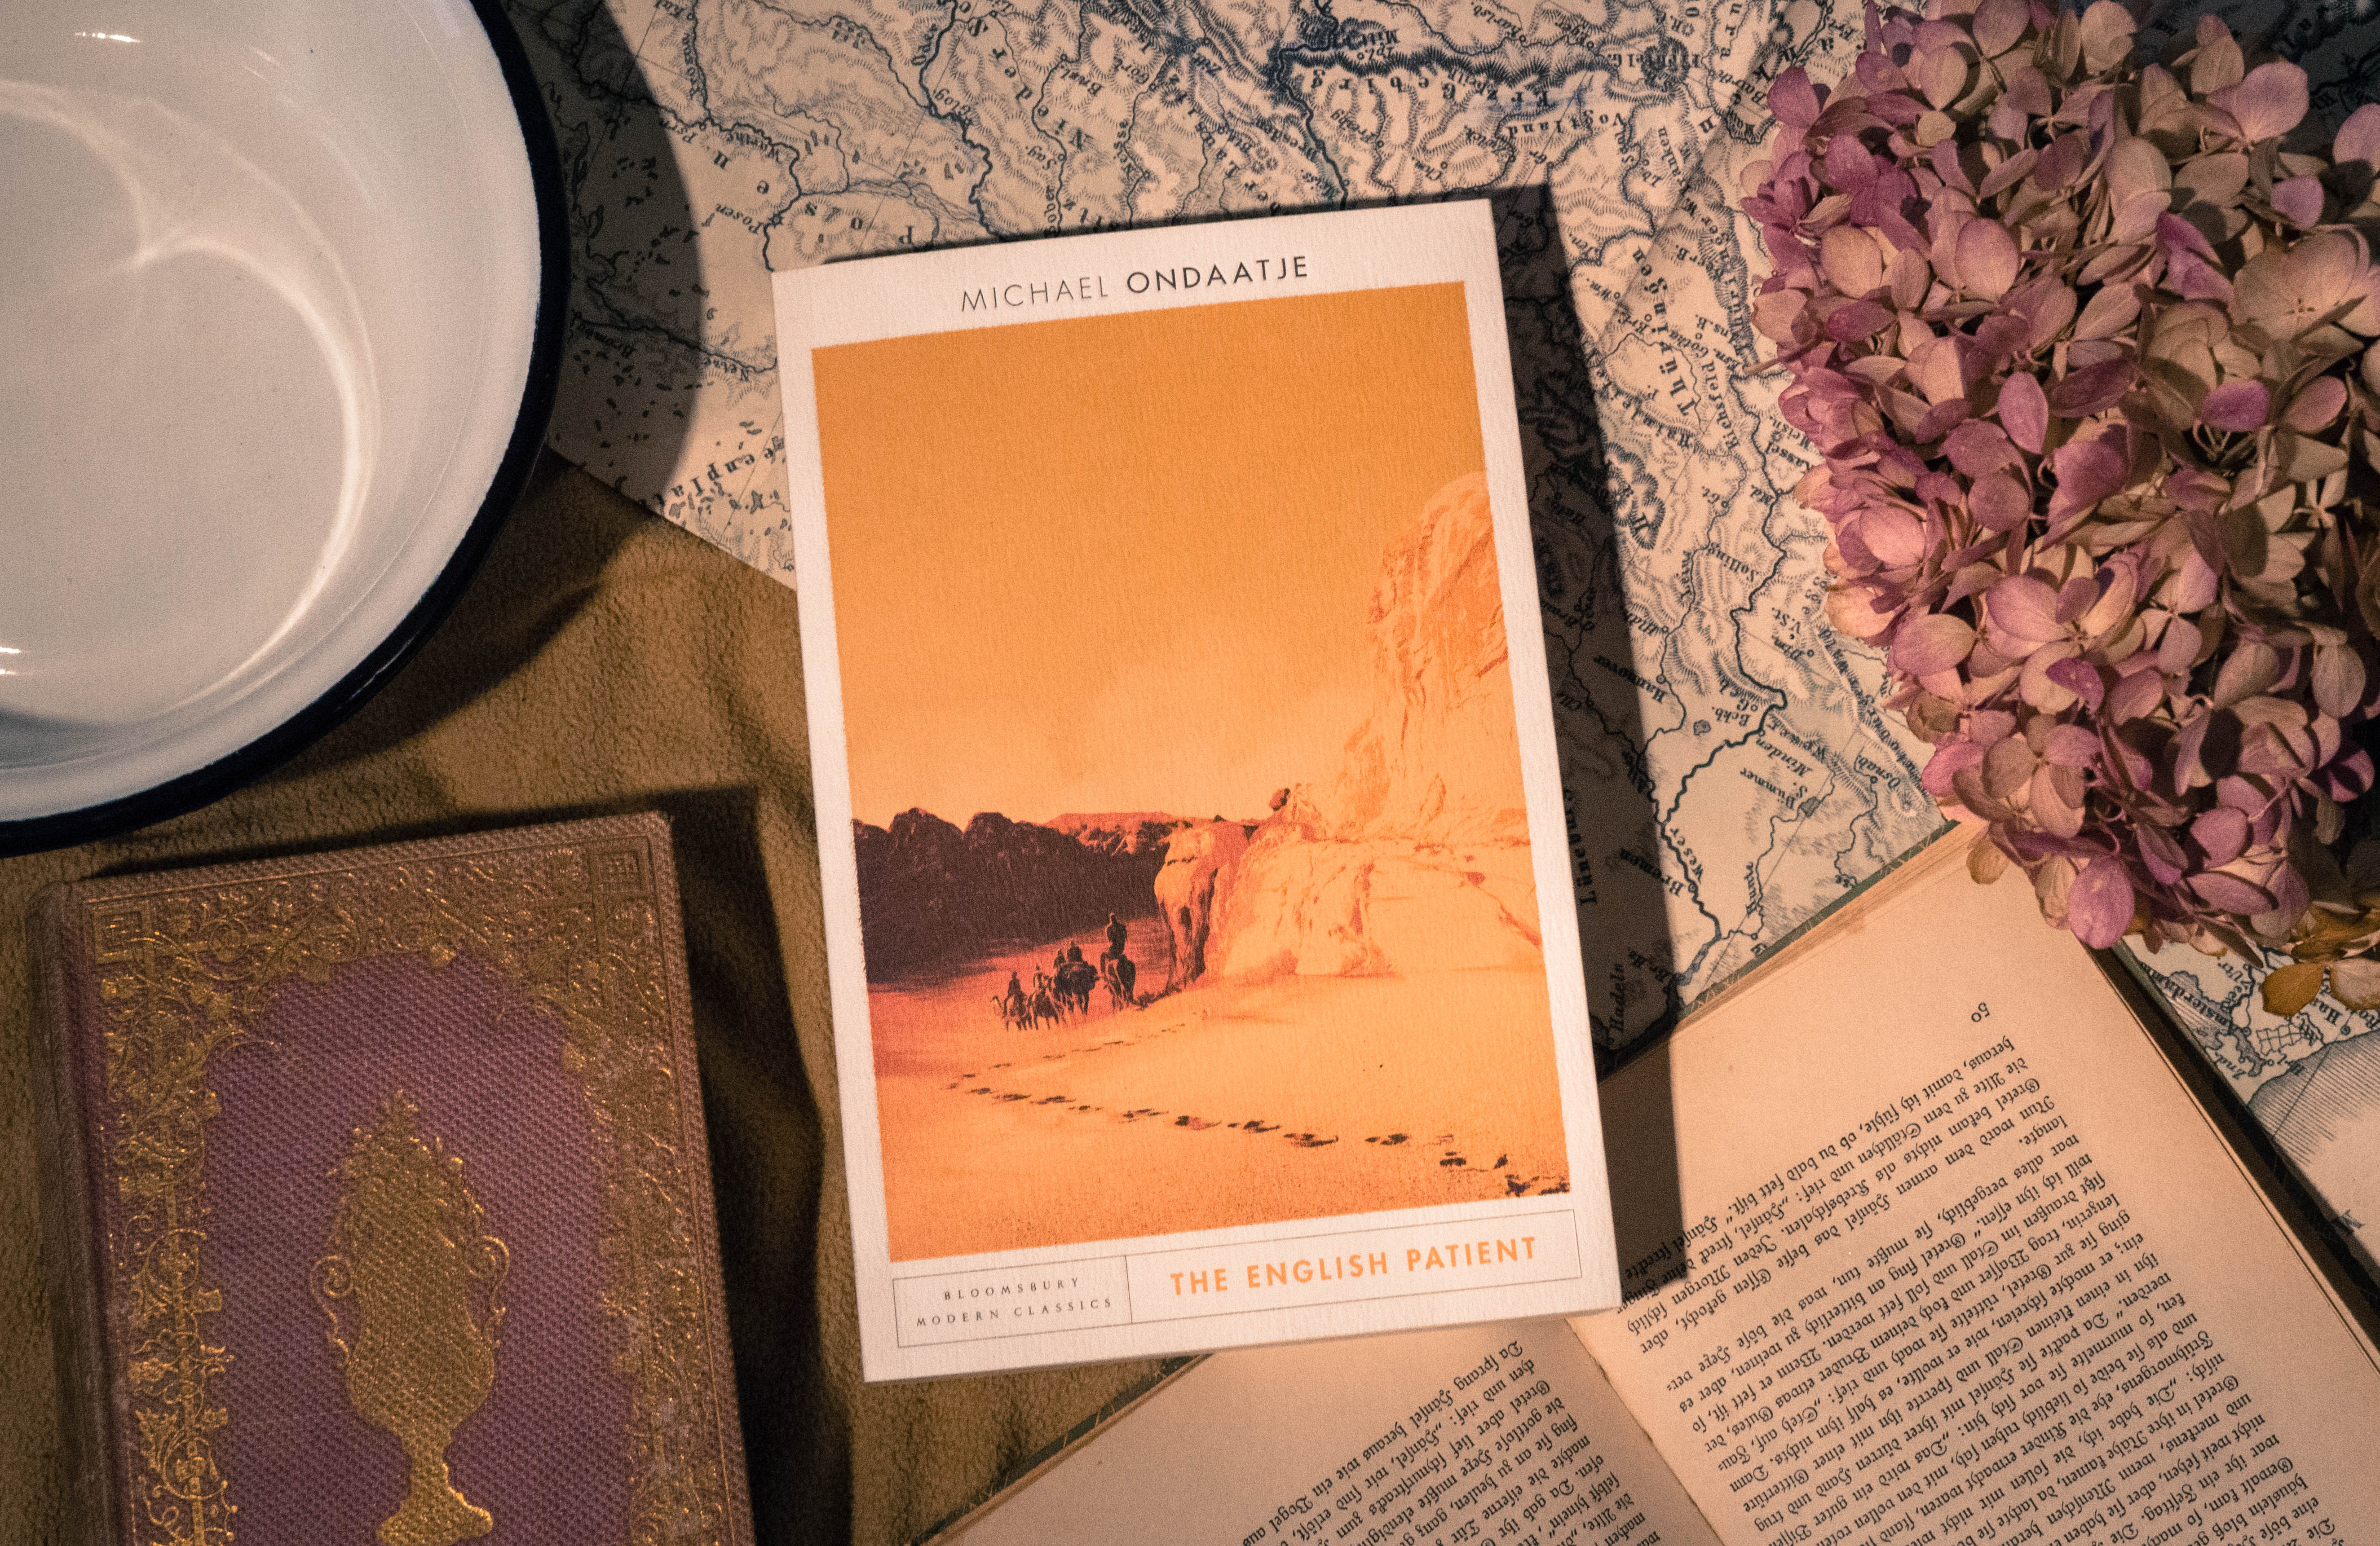 The English Patient – Michael Ondaatje graphic